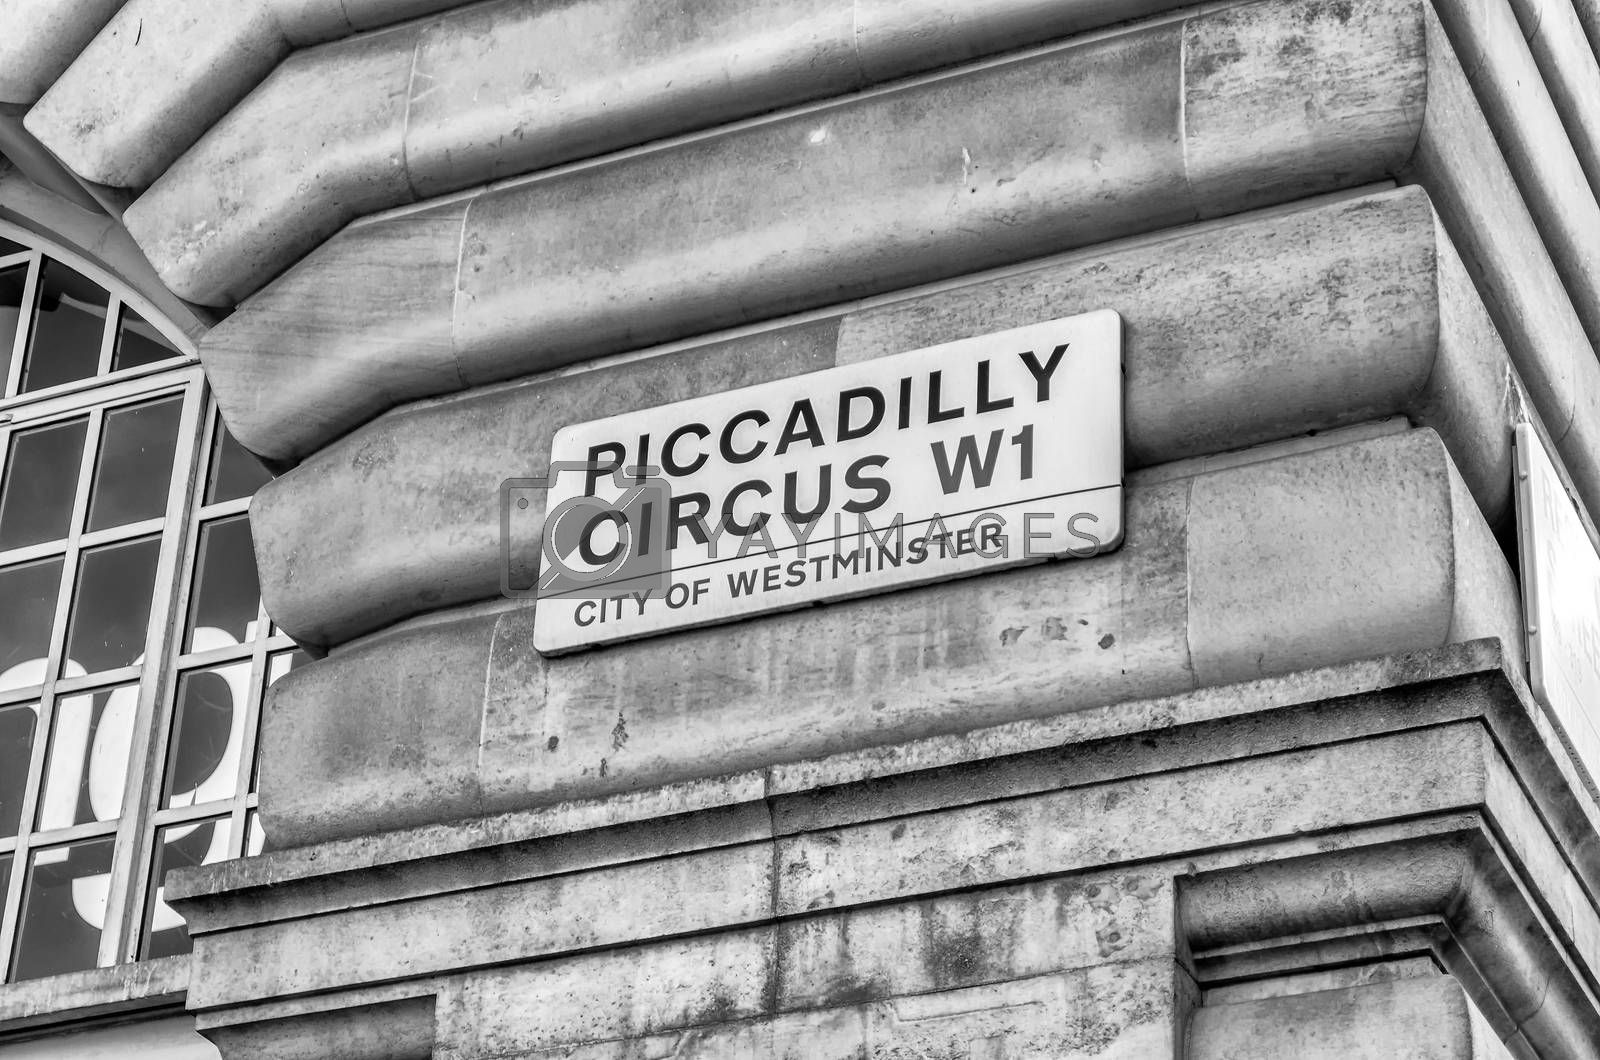 LONDON - MAY 28: Sign for Piccadilly Circus on May 28, 2015, in London, UK. The Circus is close to major shopping and entertainment areas in the West End